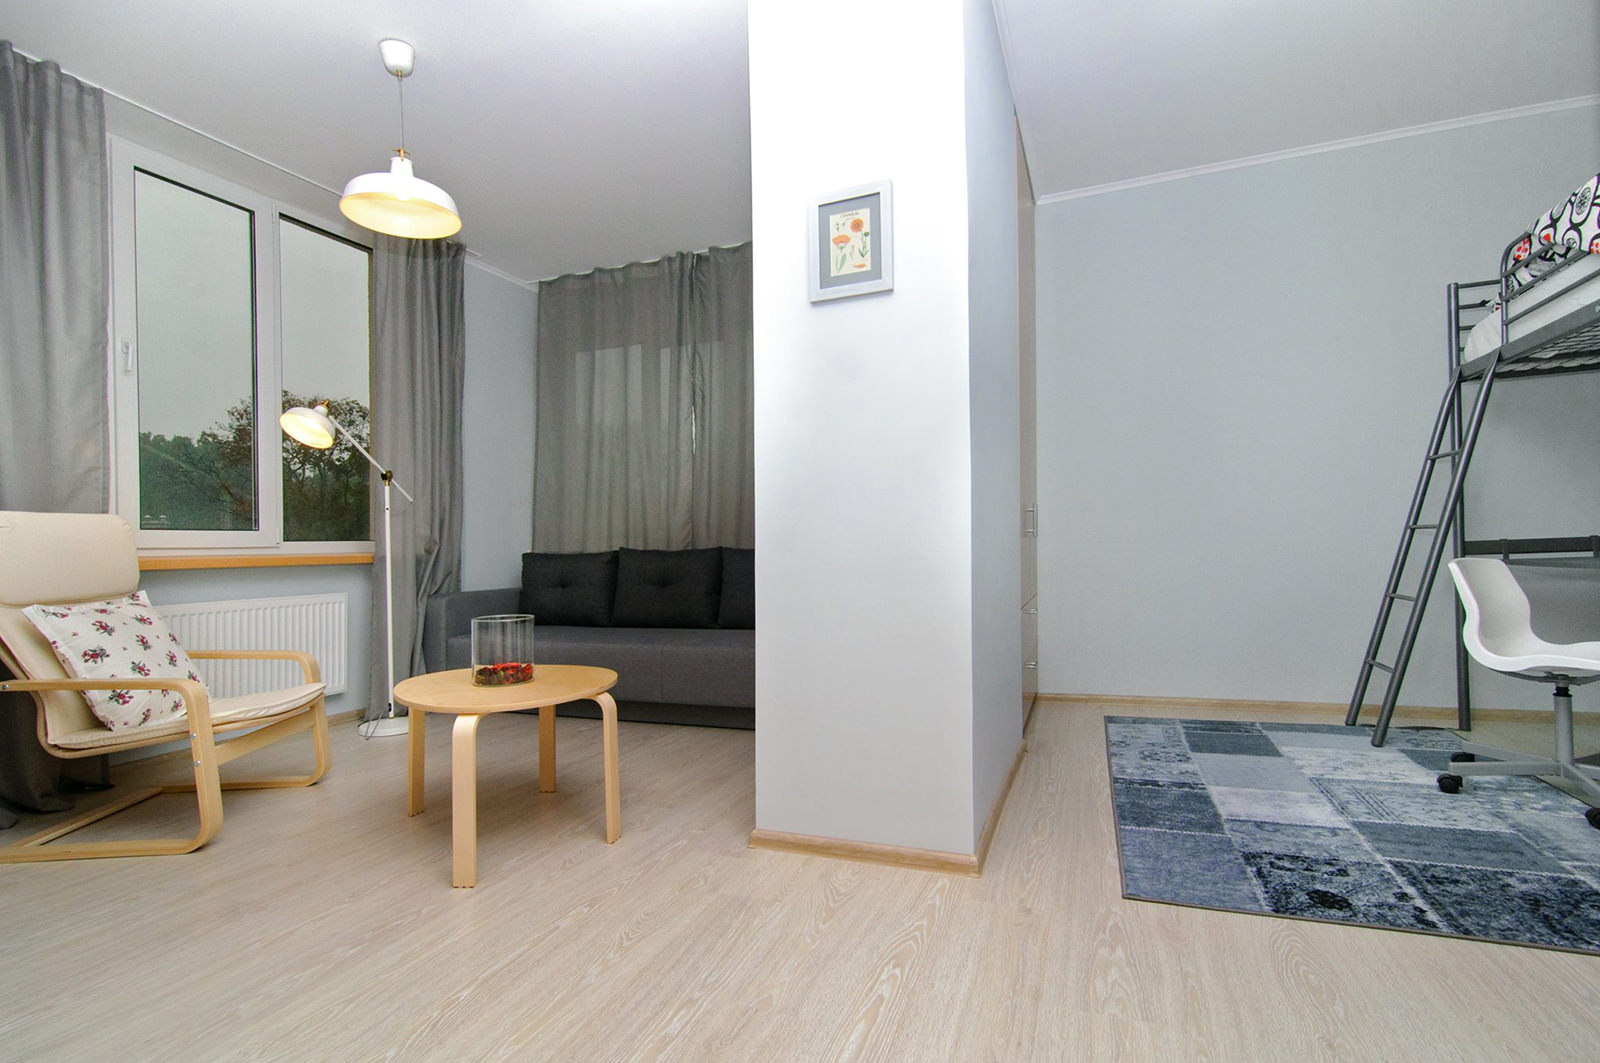 Design of a two-room apartment with two children